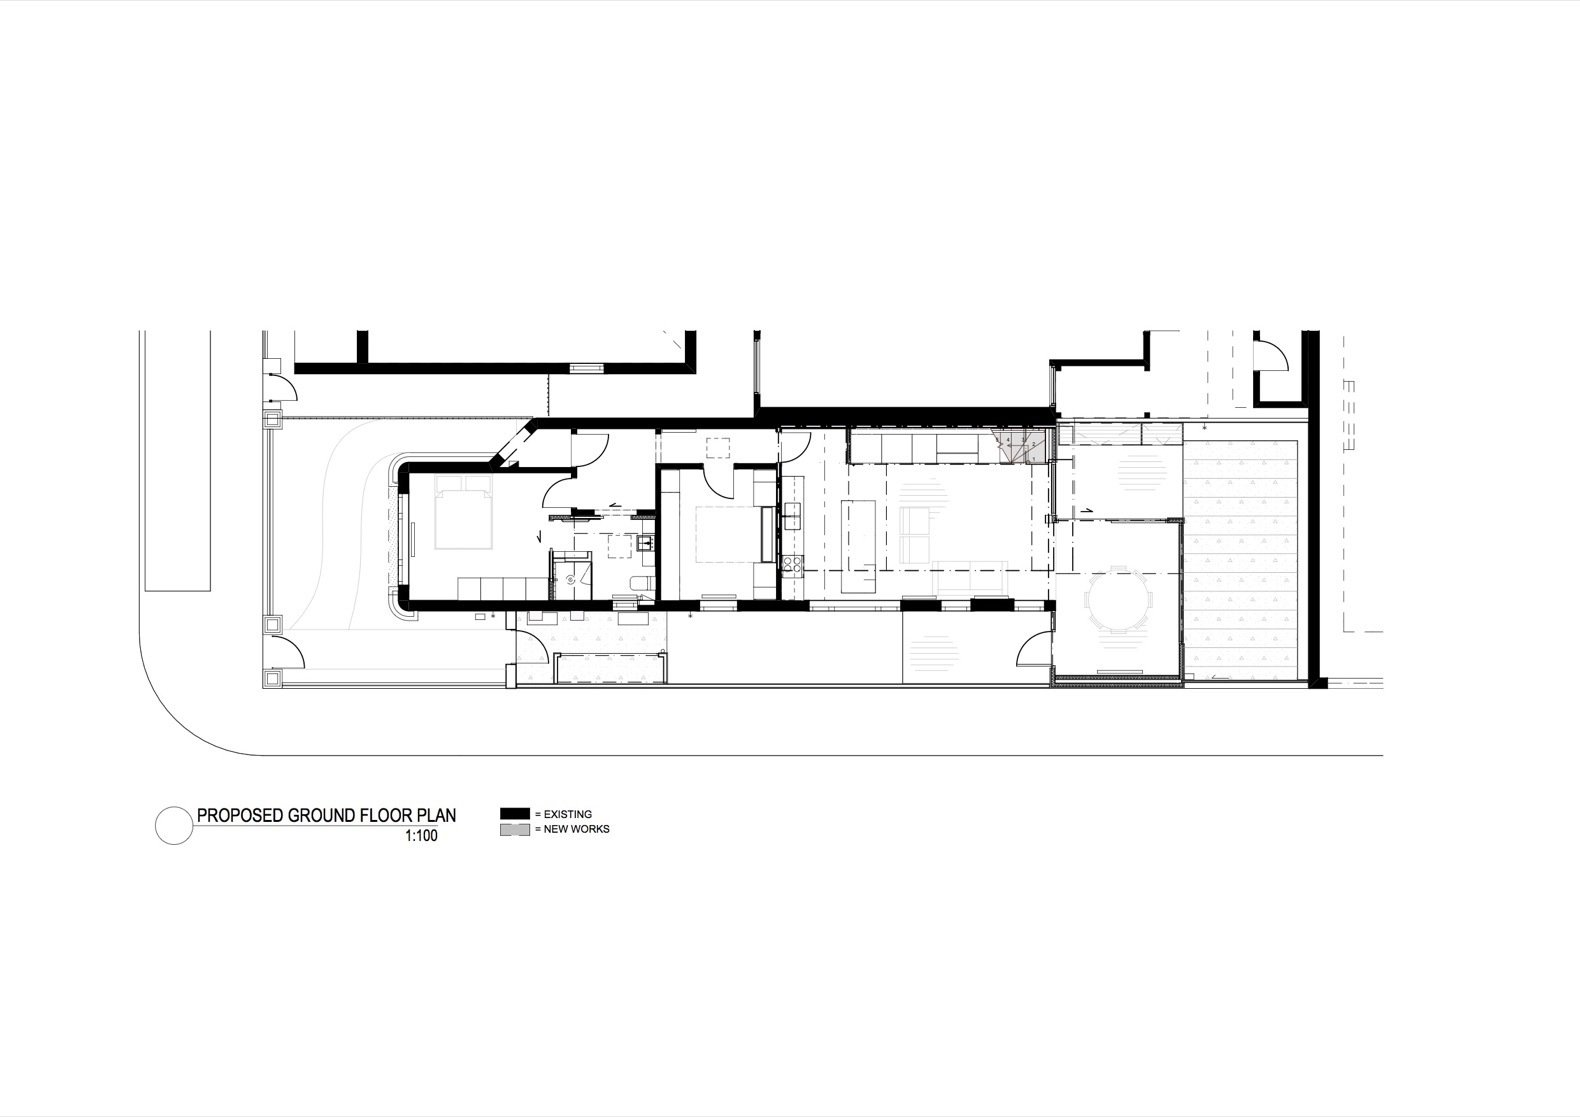 The Shadow House ground floor plan  Photo 15 of 16 in An Art Deco Dwelling Receives a Sleek, Contemporary Extension